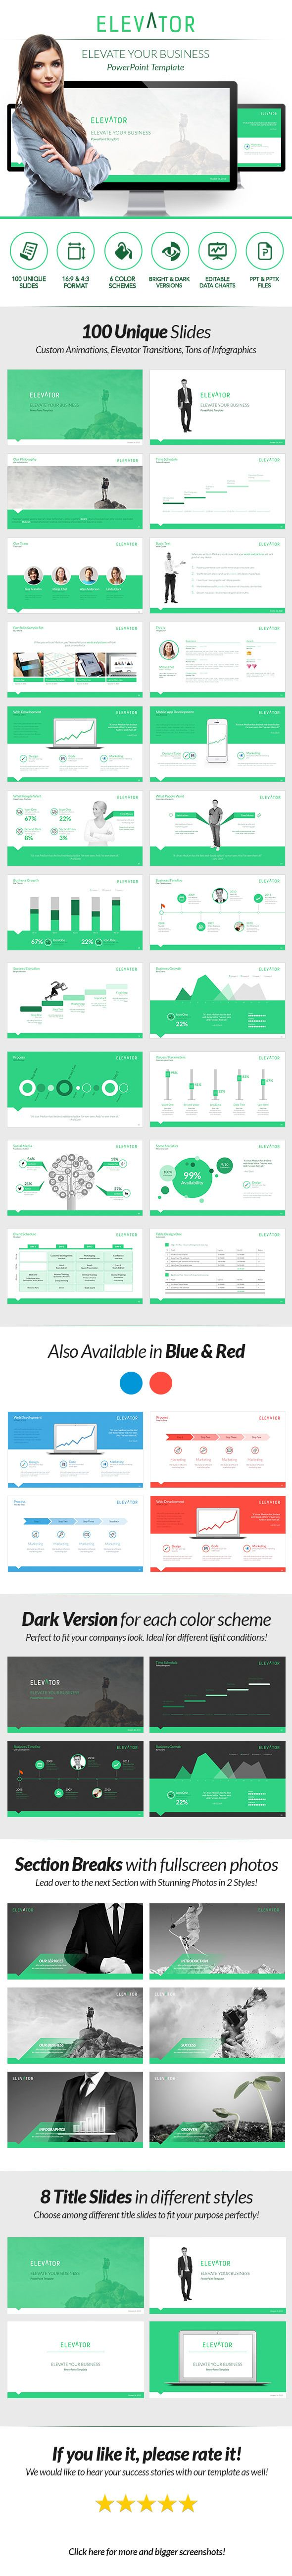 Elevator PowerPoint - Elevate Your Business - PowerPoint Templates Presentation Templates